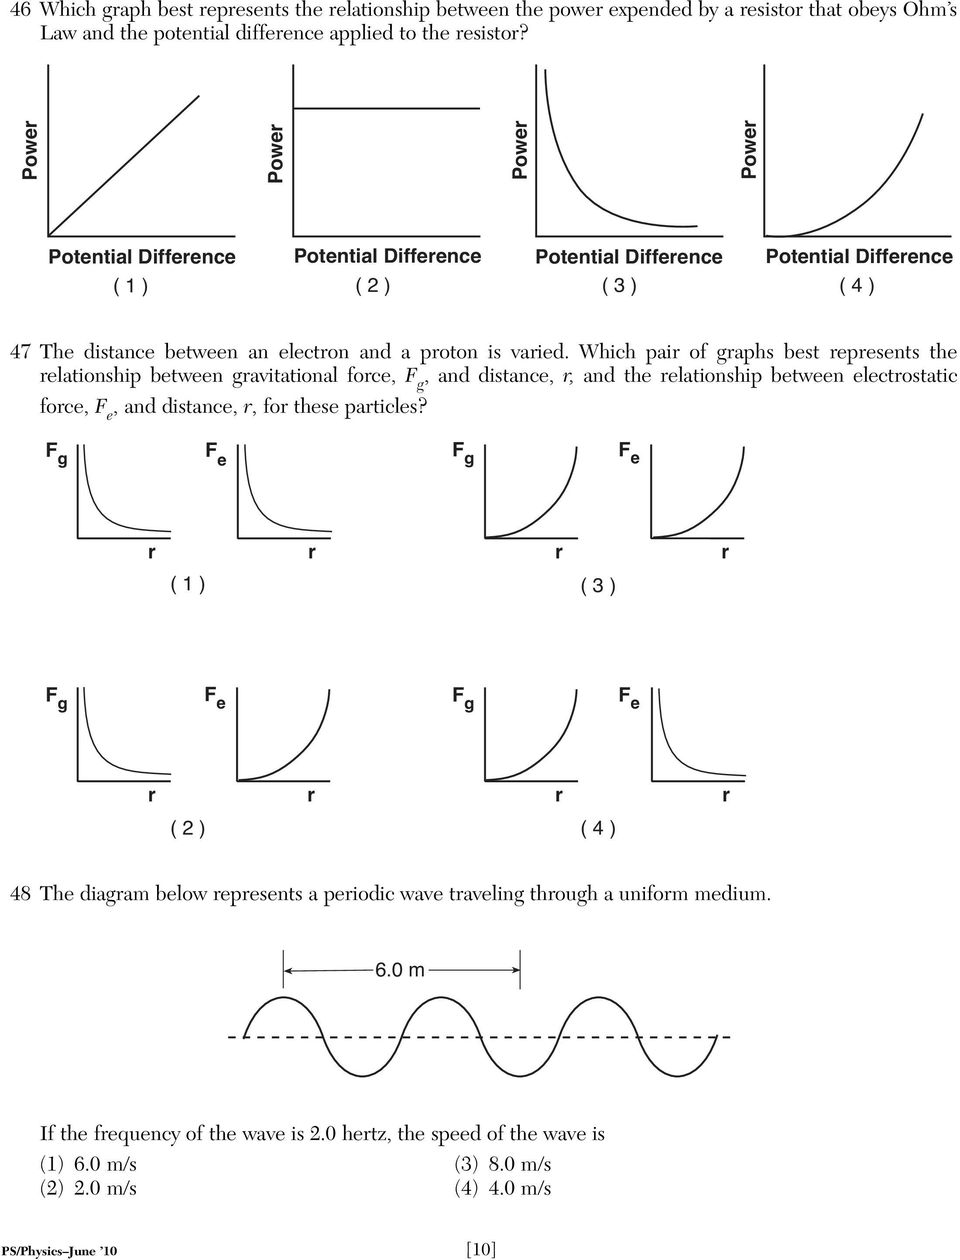 Which pair of graphs best represents the relationship between gravitational force, F g, and distance, r, and the relationship between electrostatic force, F e, and distance, r, for these particles?